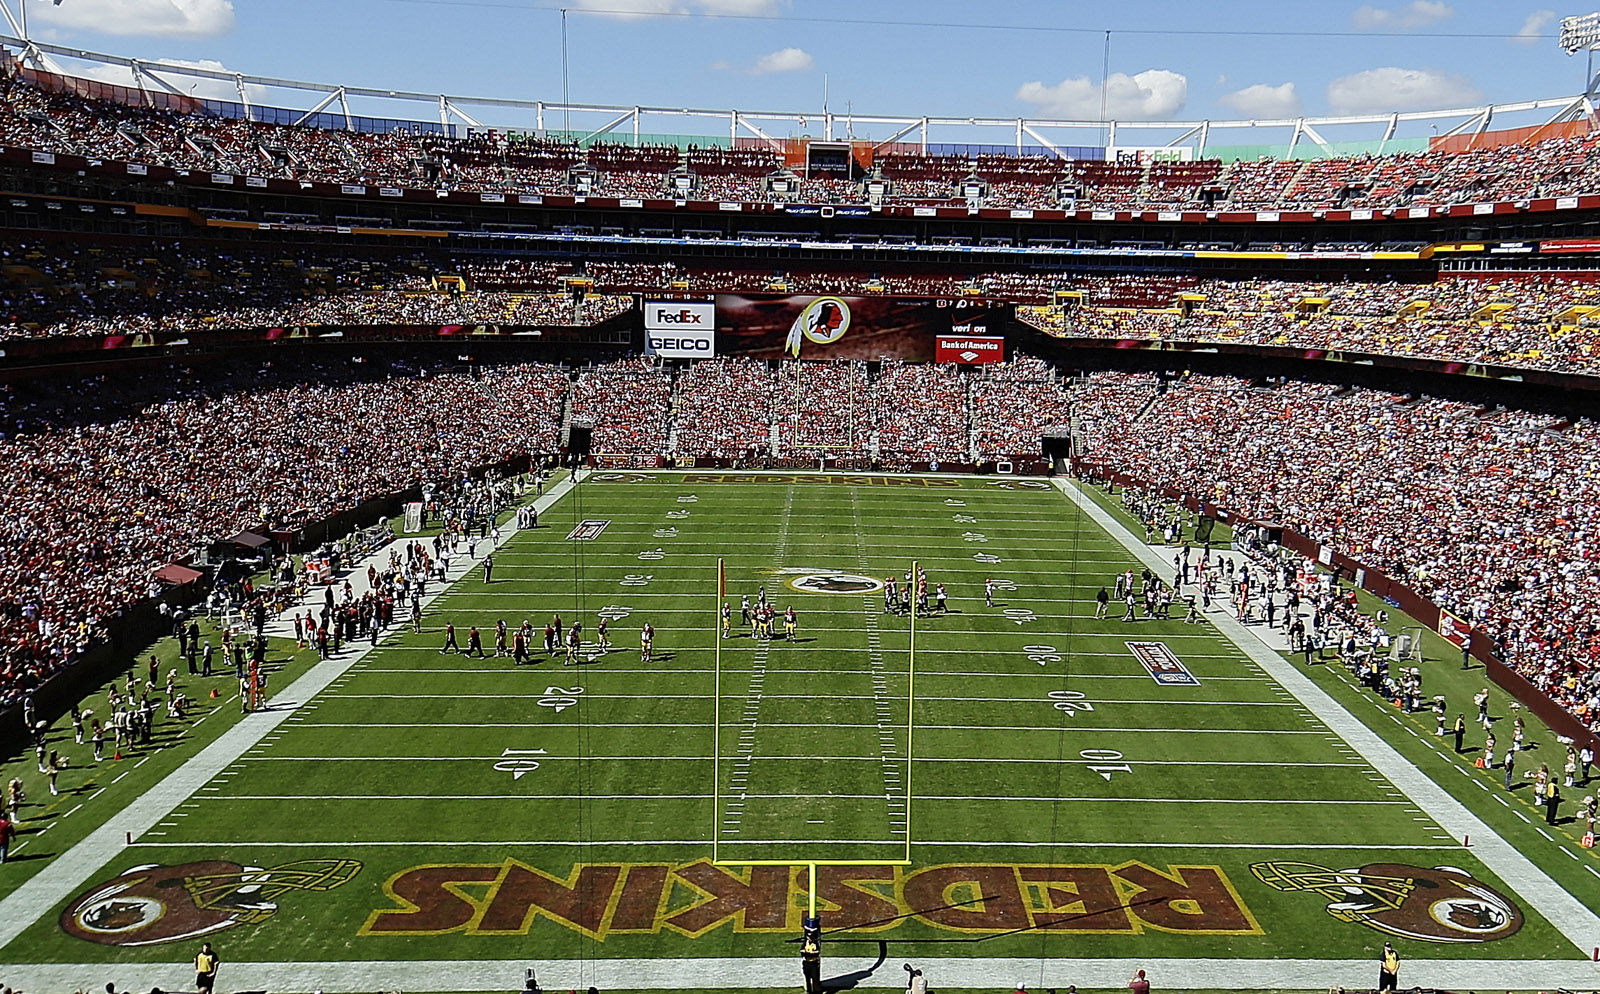 Will Va.'s next governor roll out the welcome mat for the Redskins?